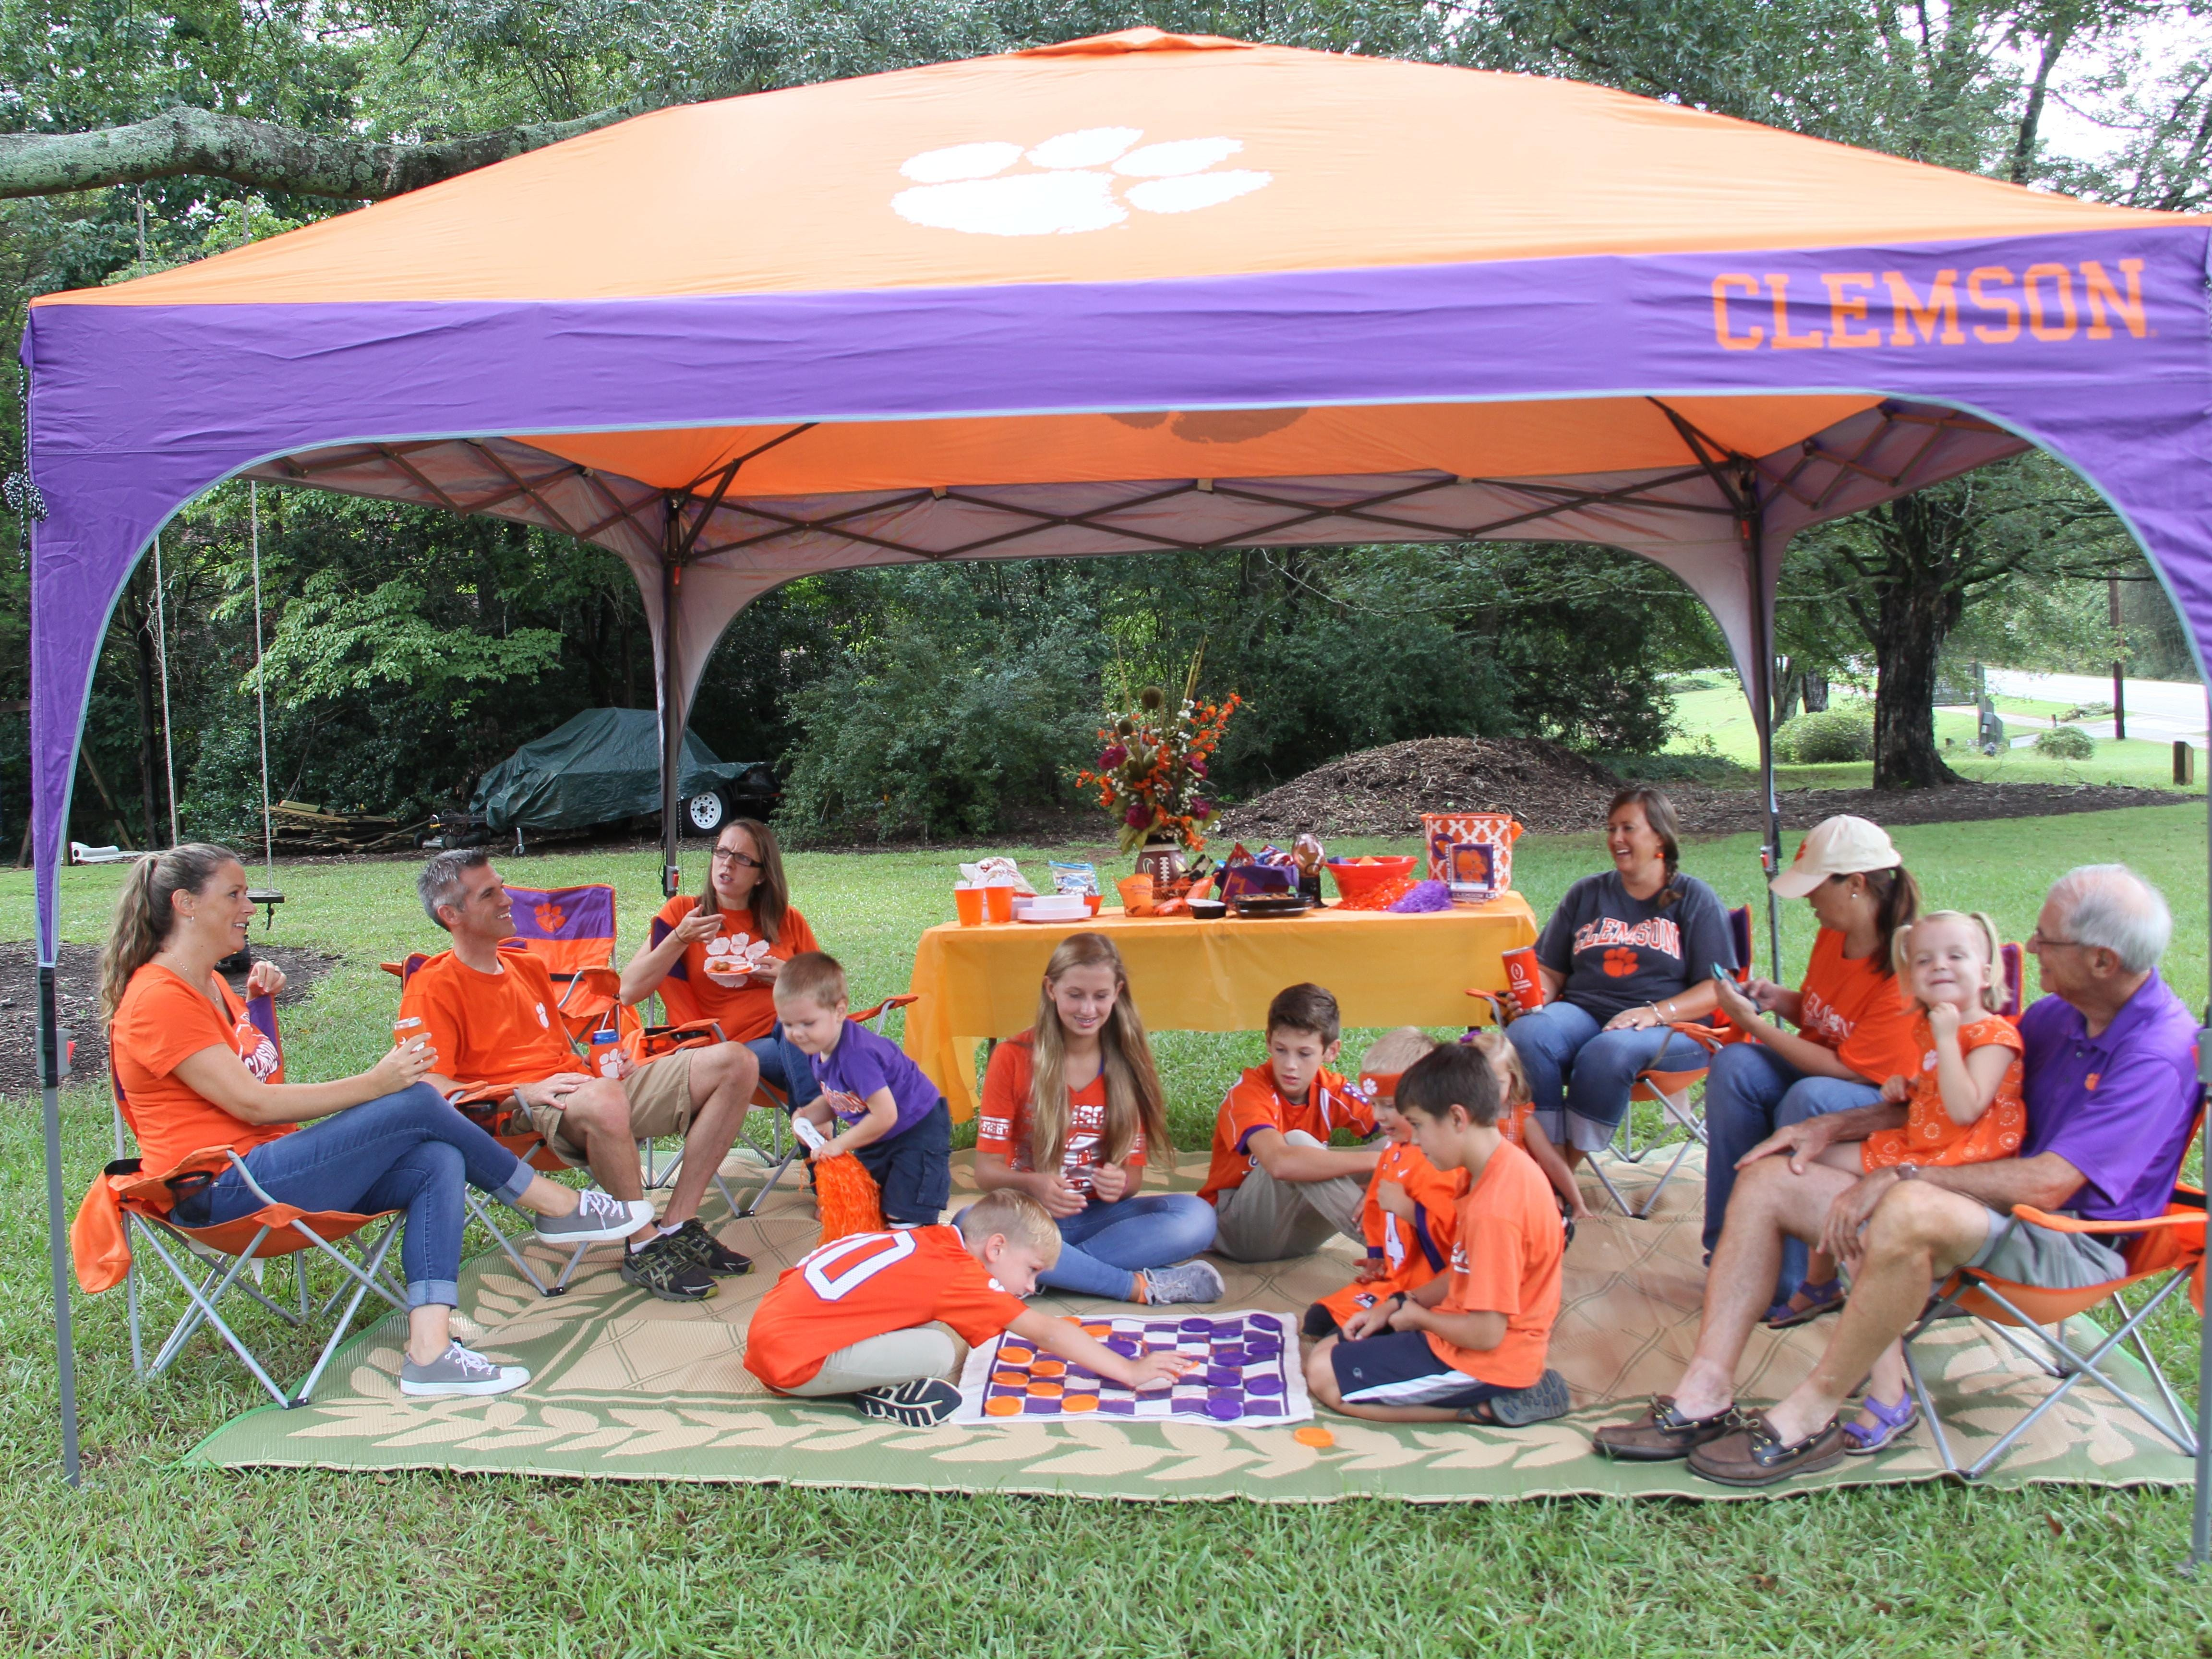 Upstate Parent polled local parents to share some helpful tips for tailgating with children.